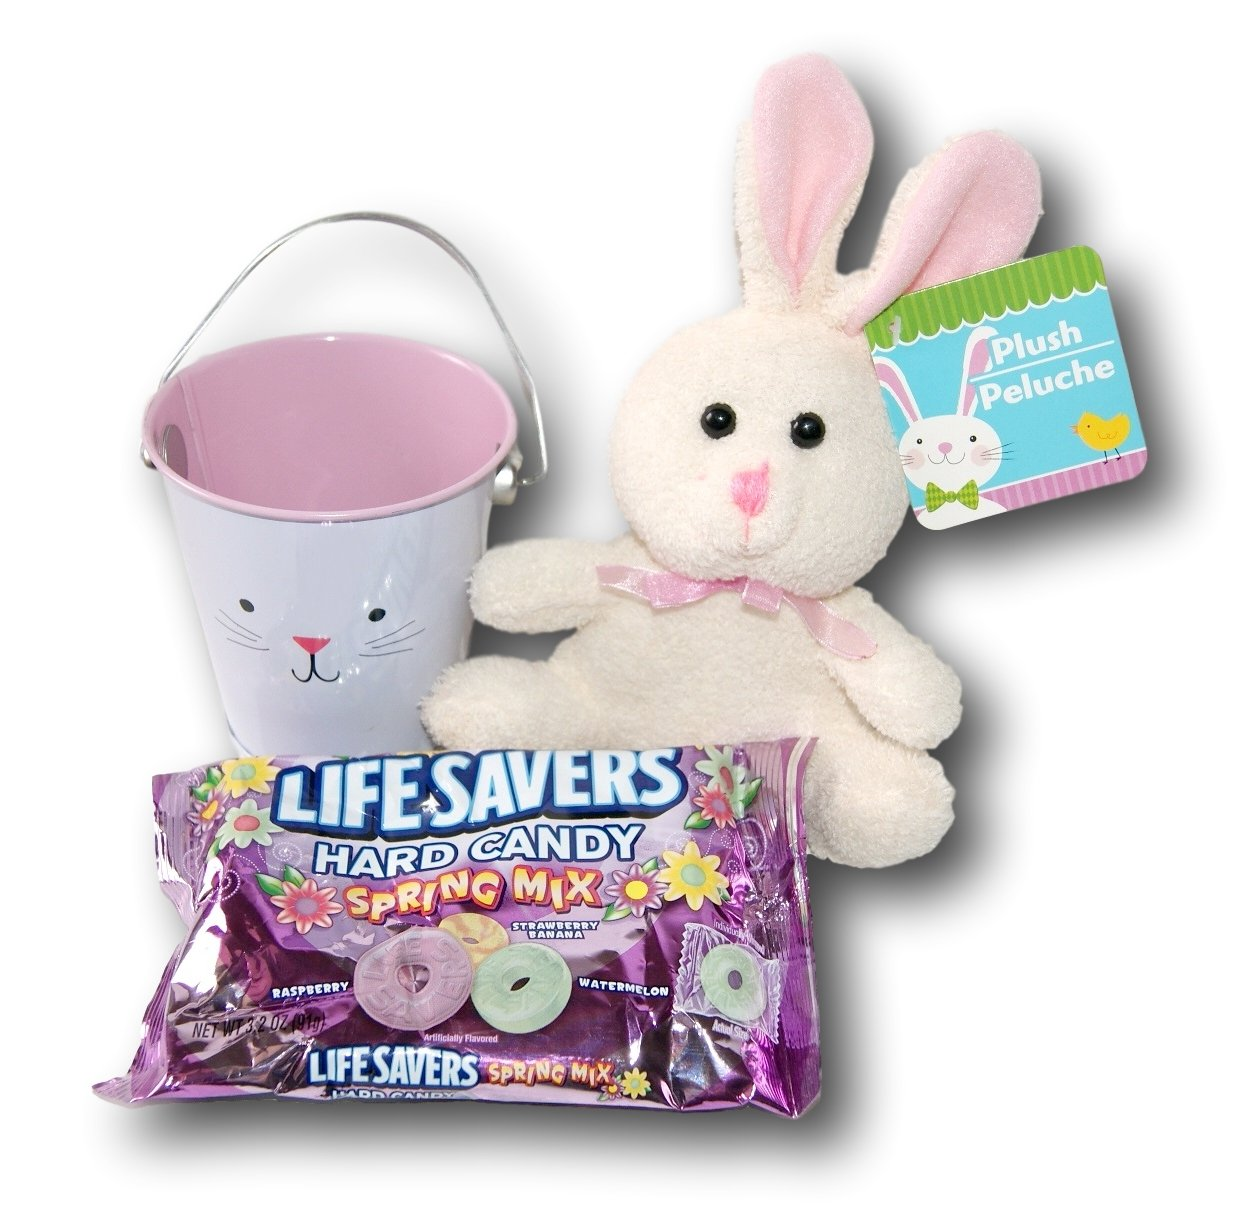 Amazon.com : Easter Bunny Plush Animal Lifesavers Candy Gift Pail : Grocery & Gourmet Food